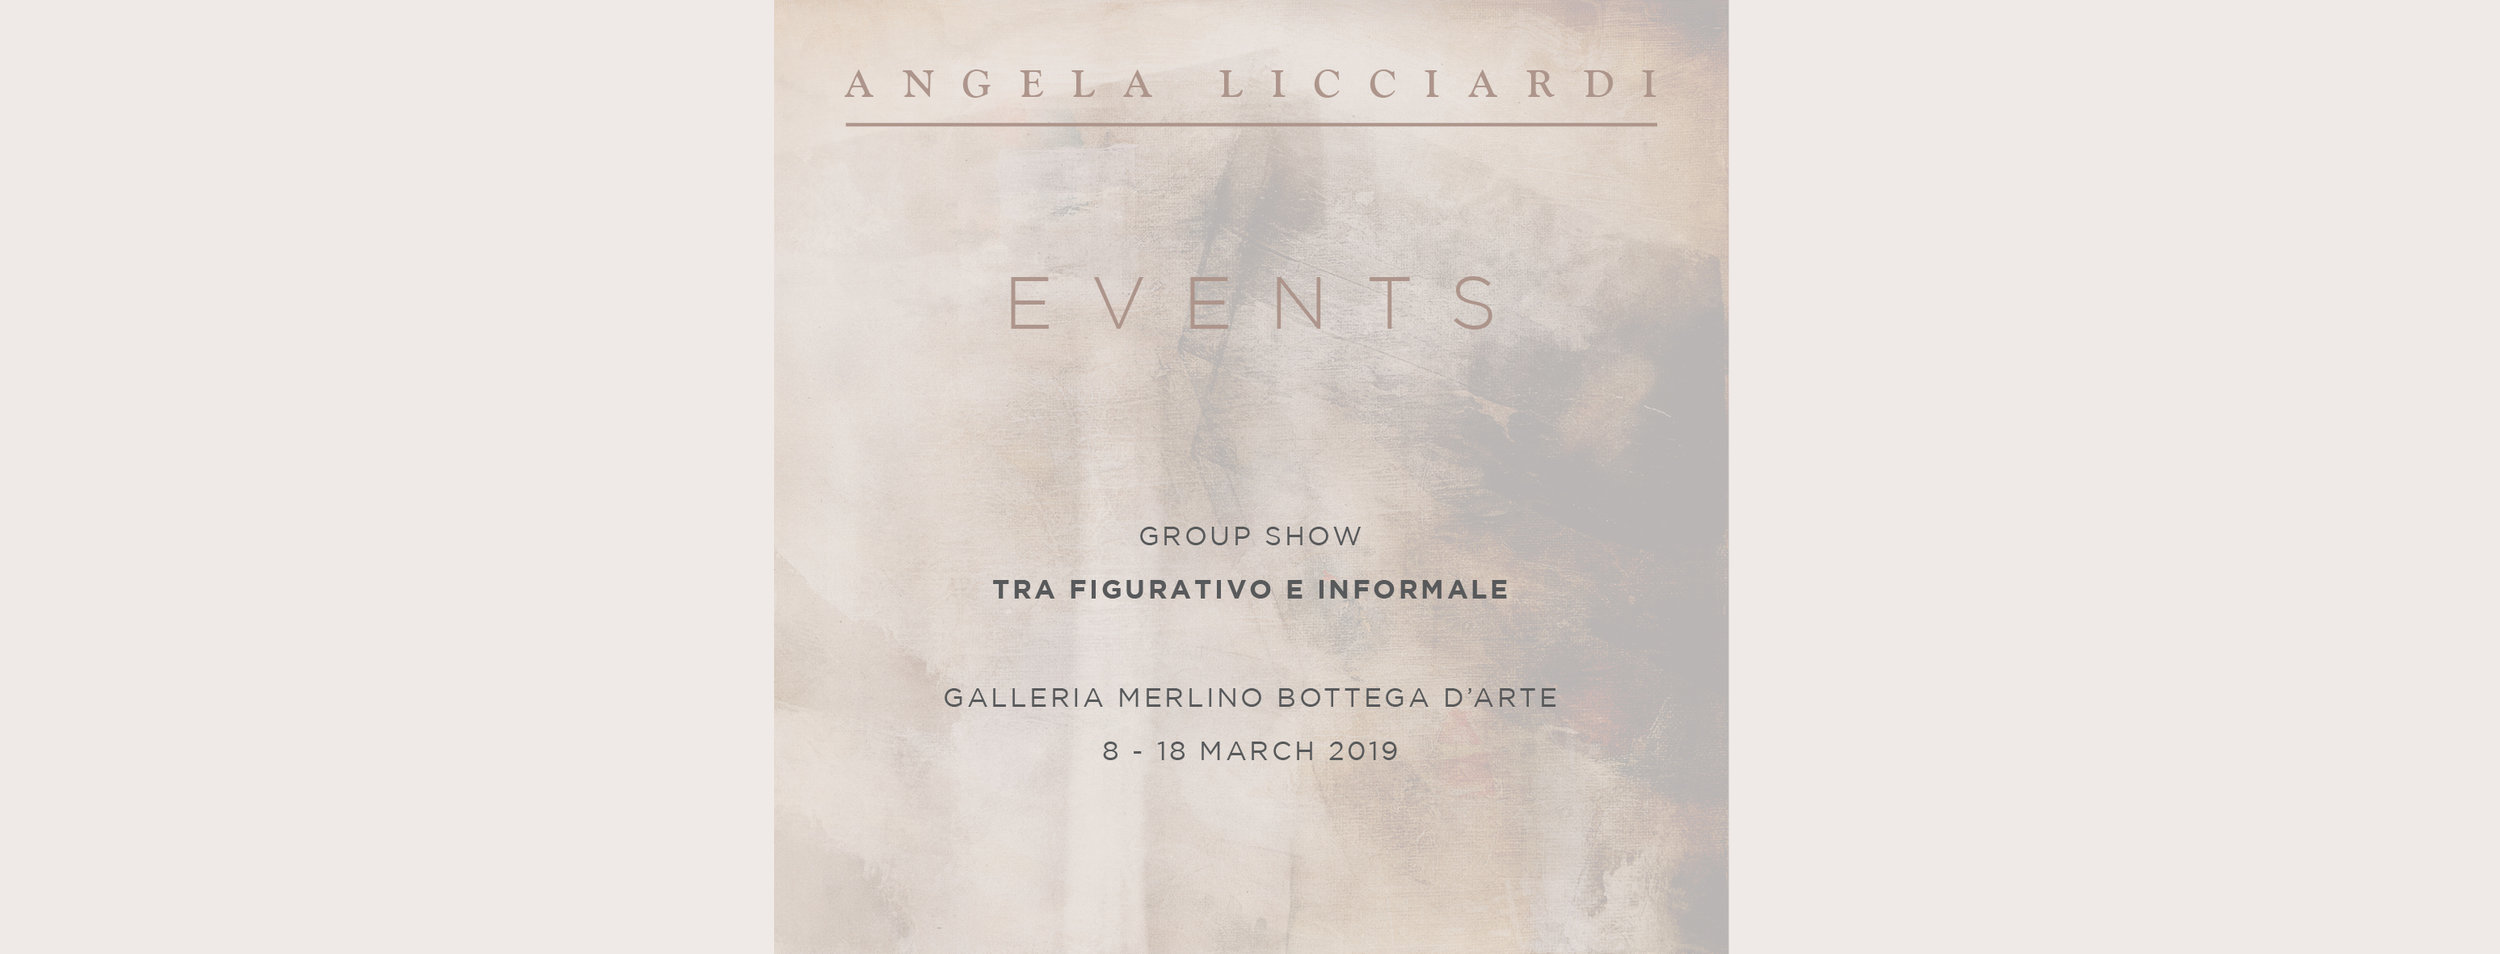 AngelaLicciardiArt_GalleriaMerlino_March.jpg